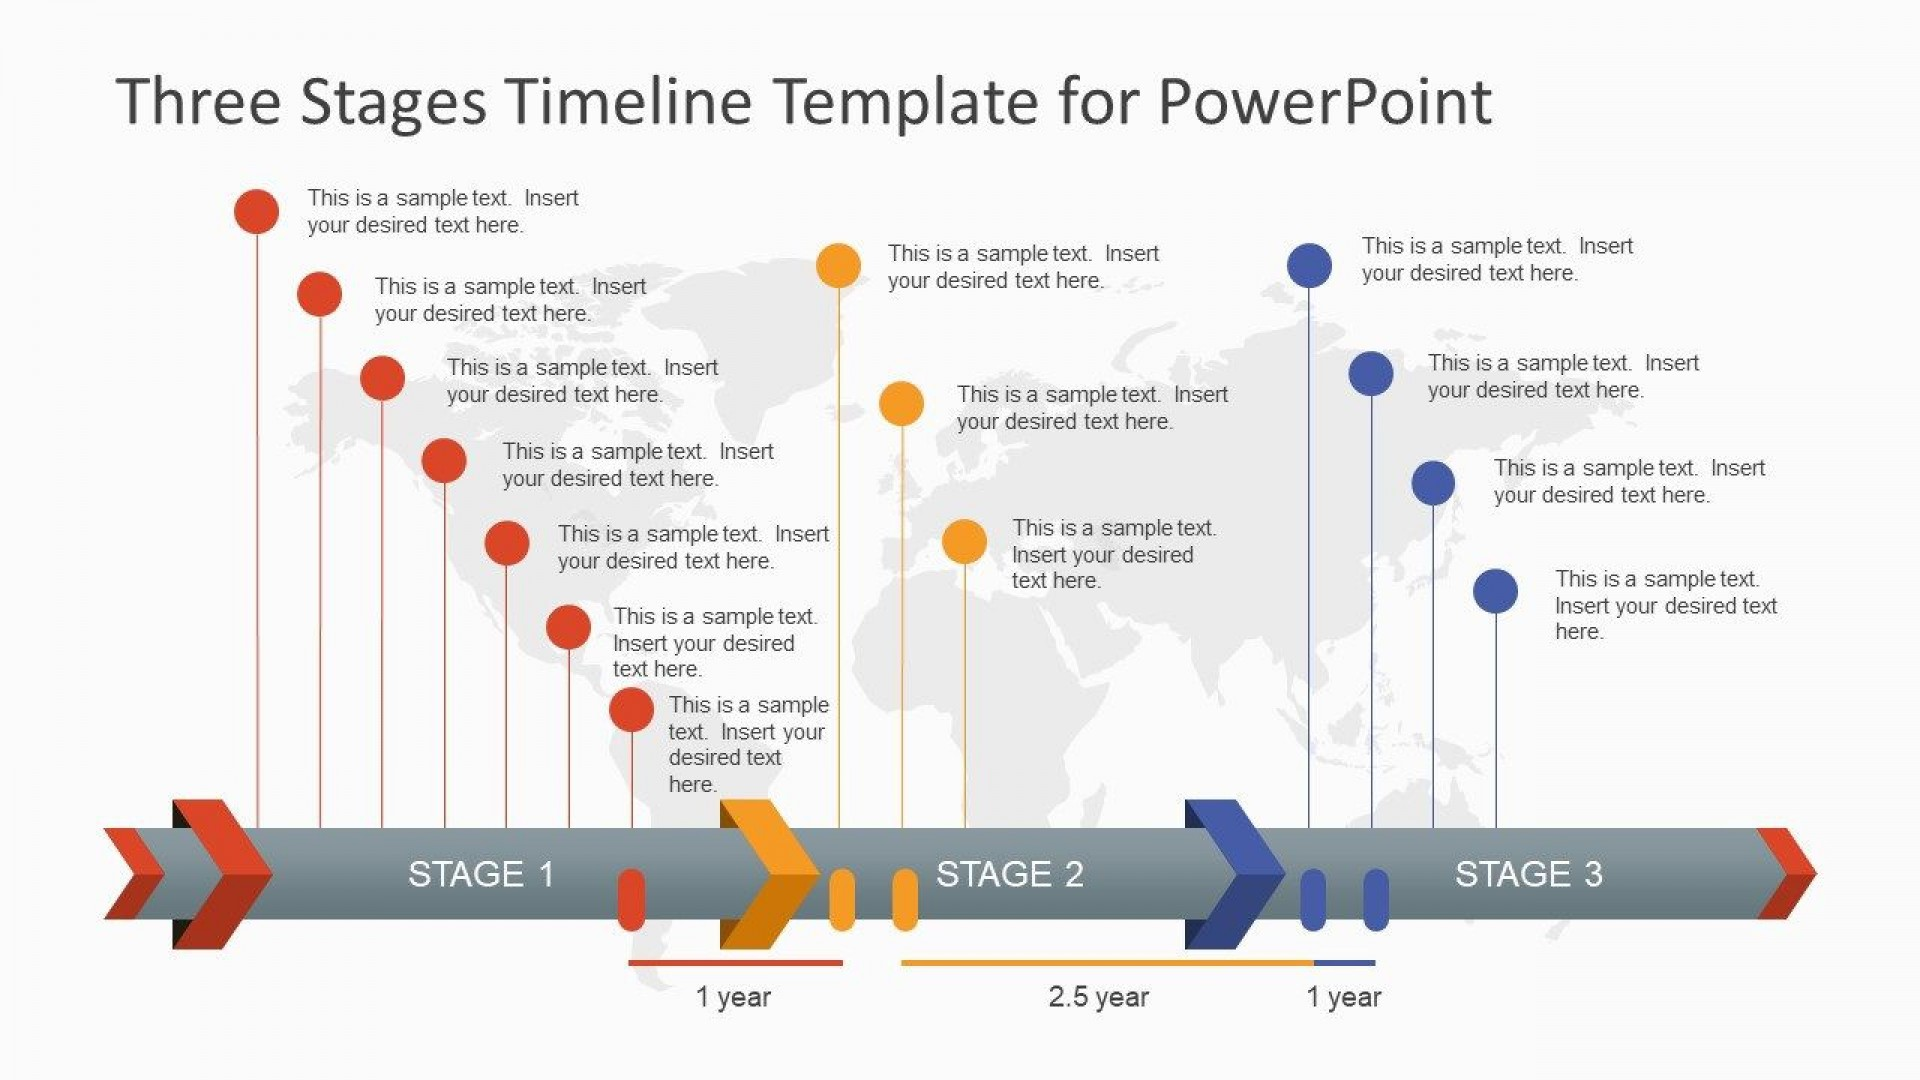 001 Striking Timeline Sample For Ppt High Definition  Powerpoint Template 2010 Example1920